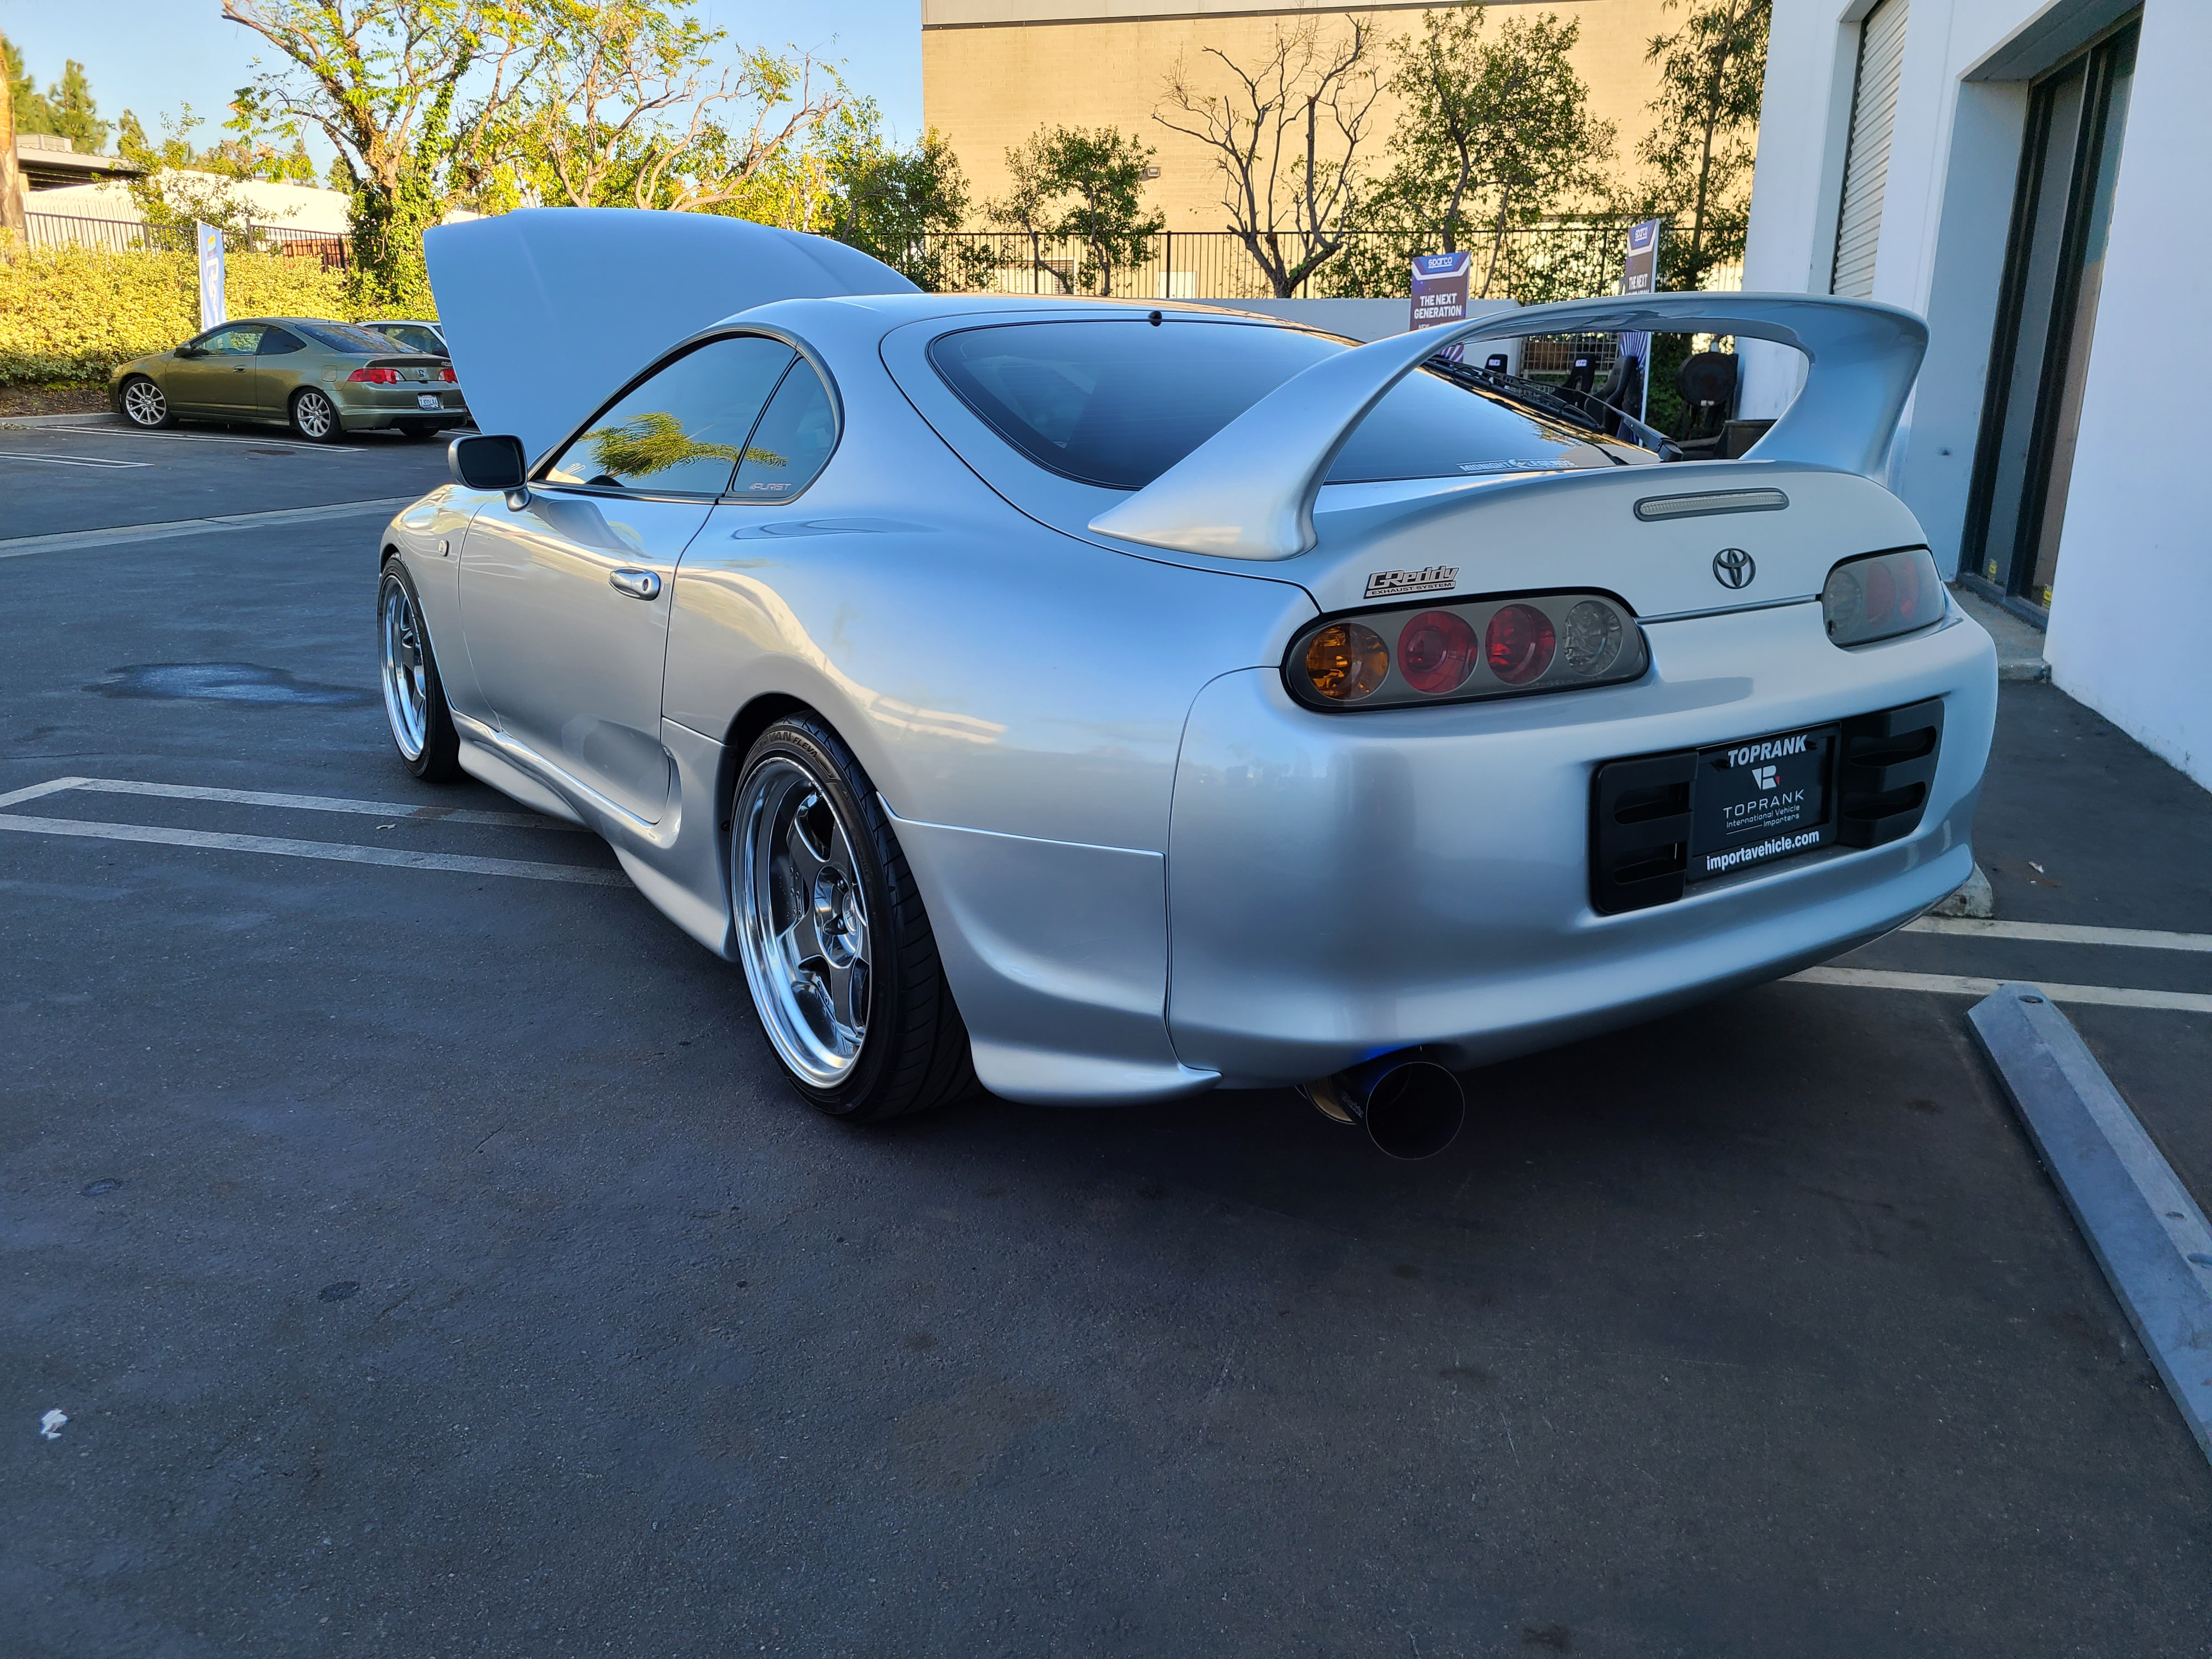 JDM Toyota Supra imported by Toprank Importers